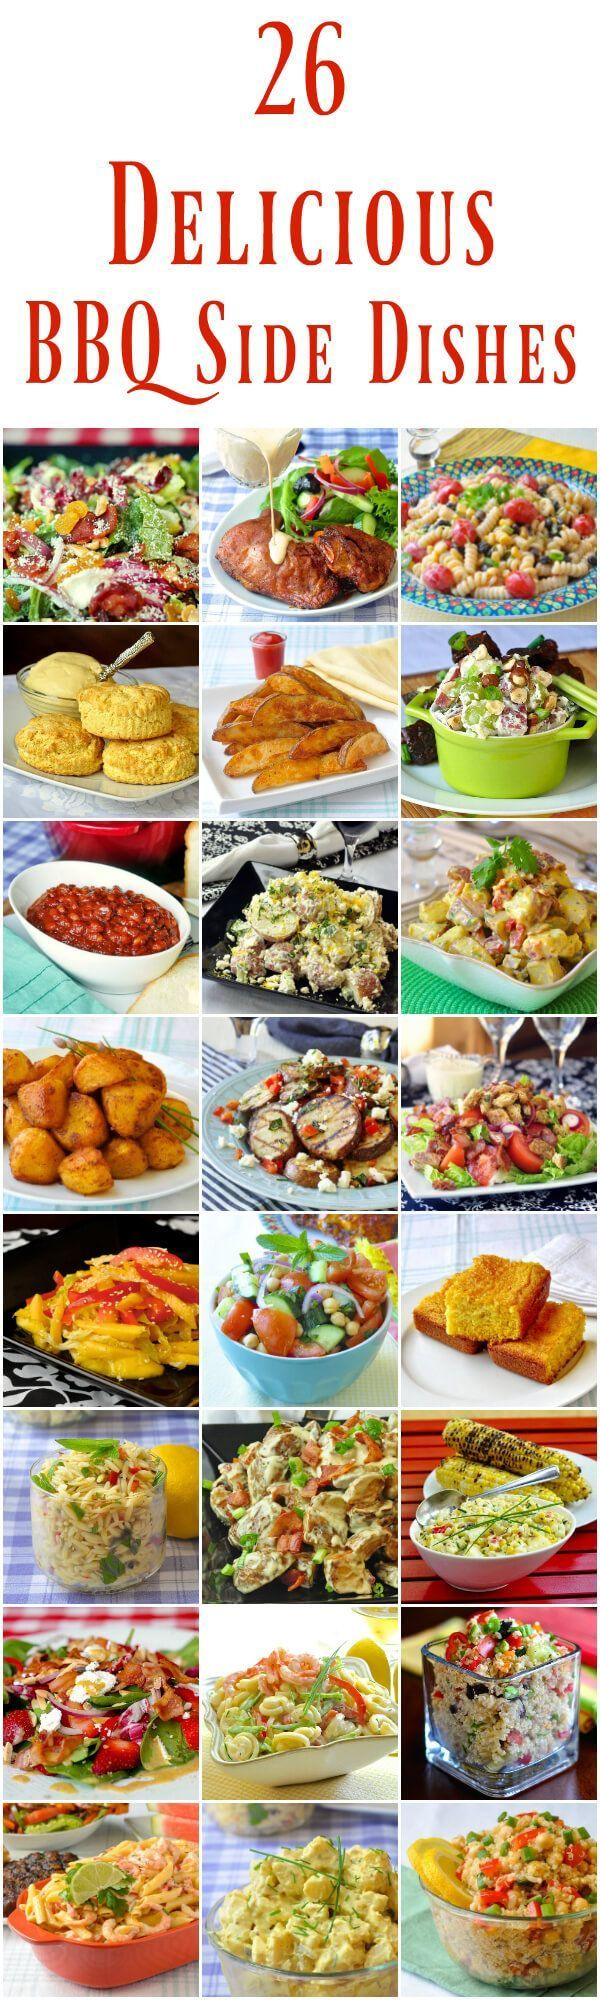 26 Best Barbecue Side Dishes – Just in time for grilling season! So much to choose from! From cornbread to potato salads, baked beans and beyond; make your next backyard BBQ something special.